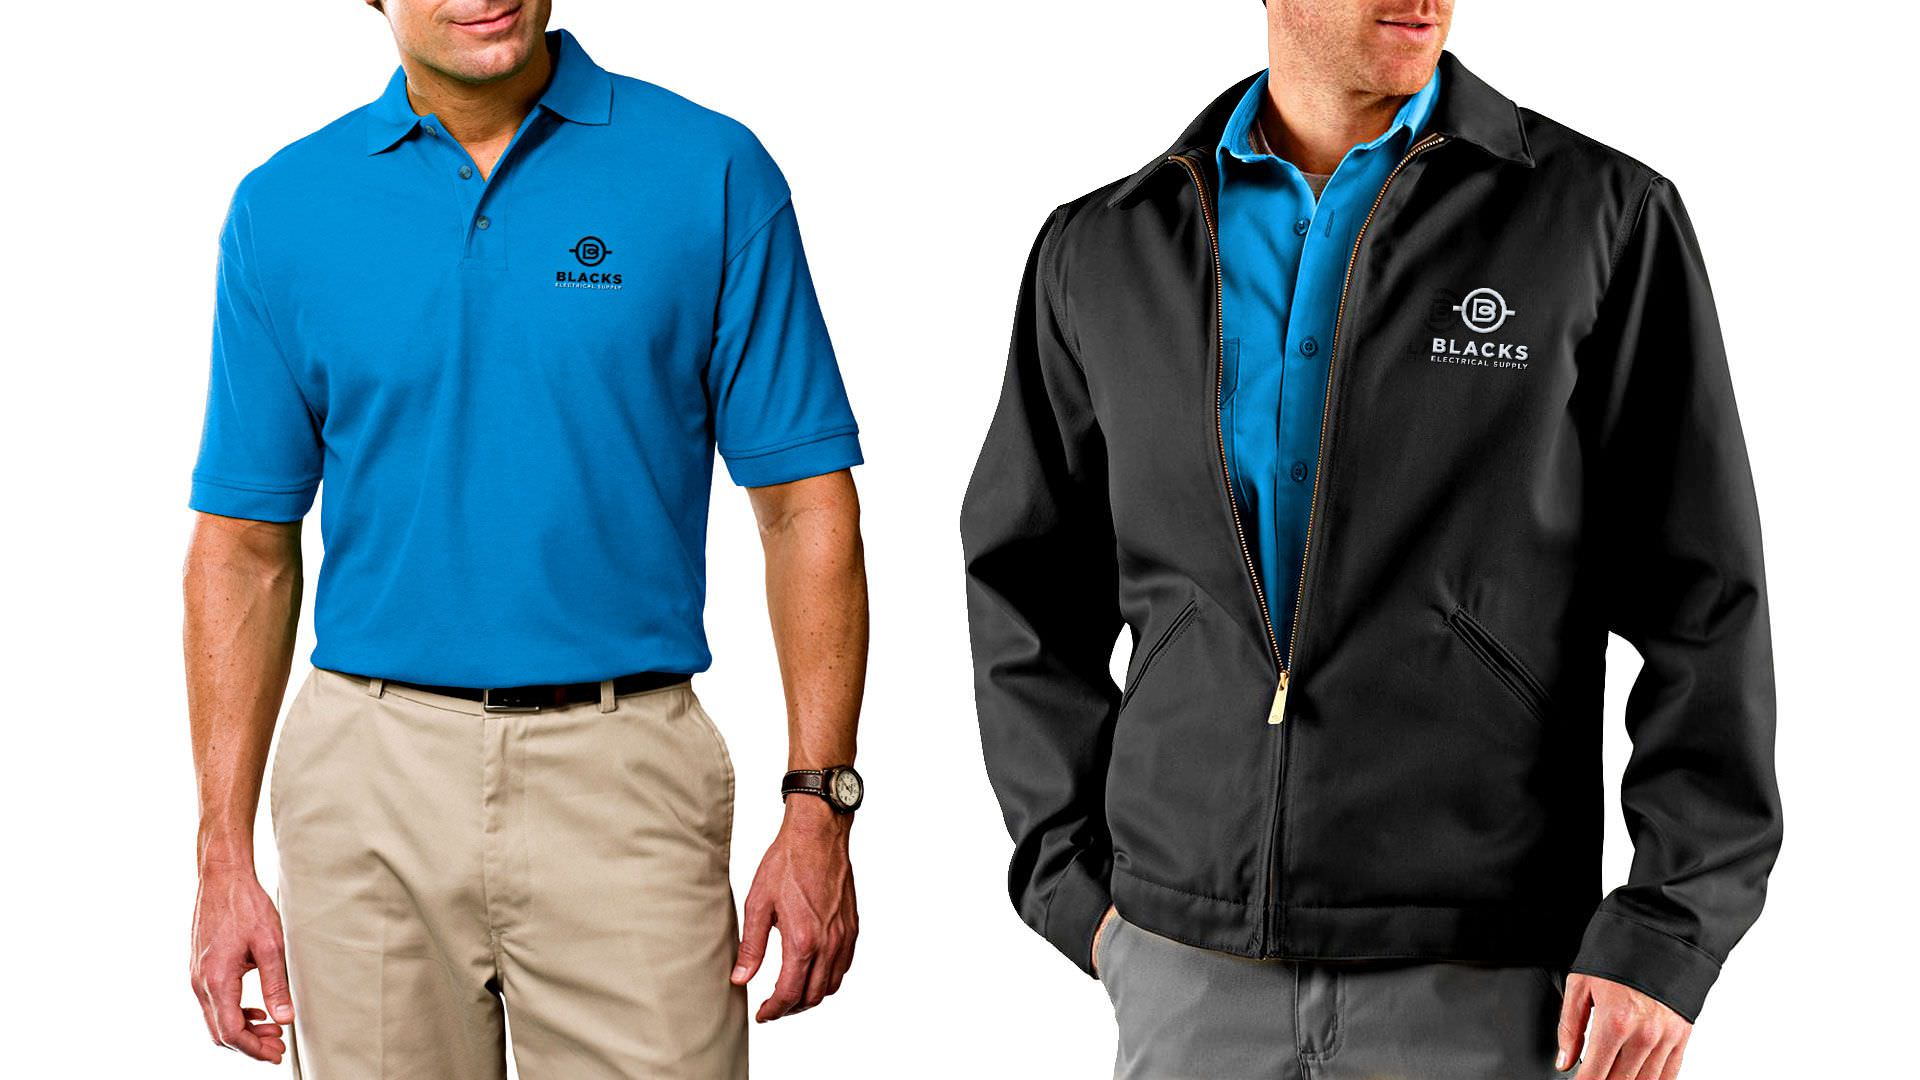 Branding Greenville-based Blacks Electrical Supply - - Branding Greenville Shirt and Jacket